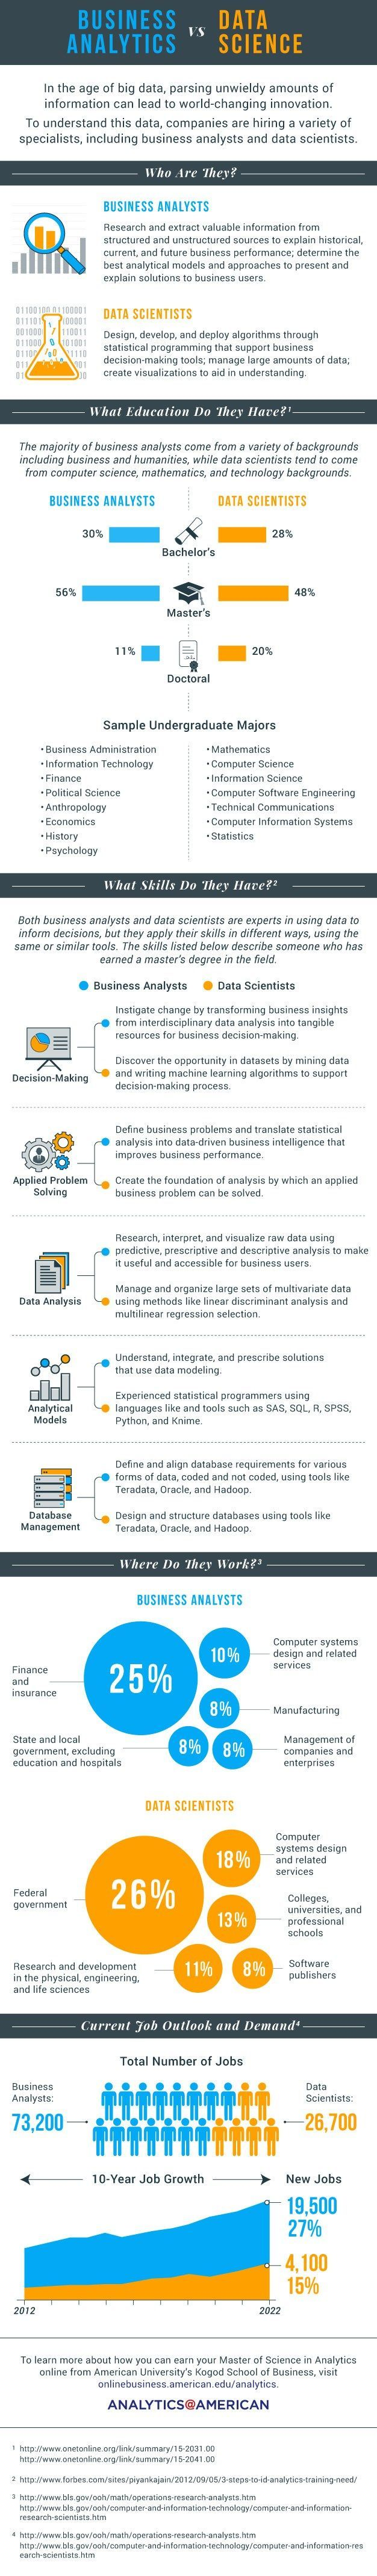 Business Analytics Vs Data Science #Infographic #Business #Data